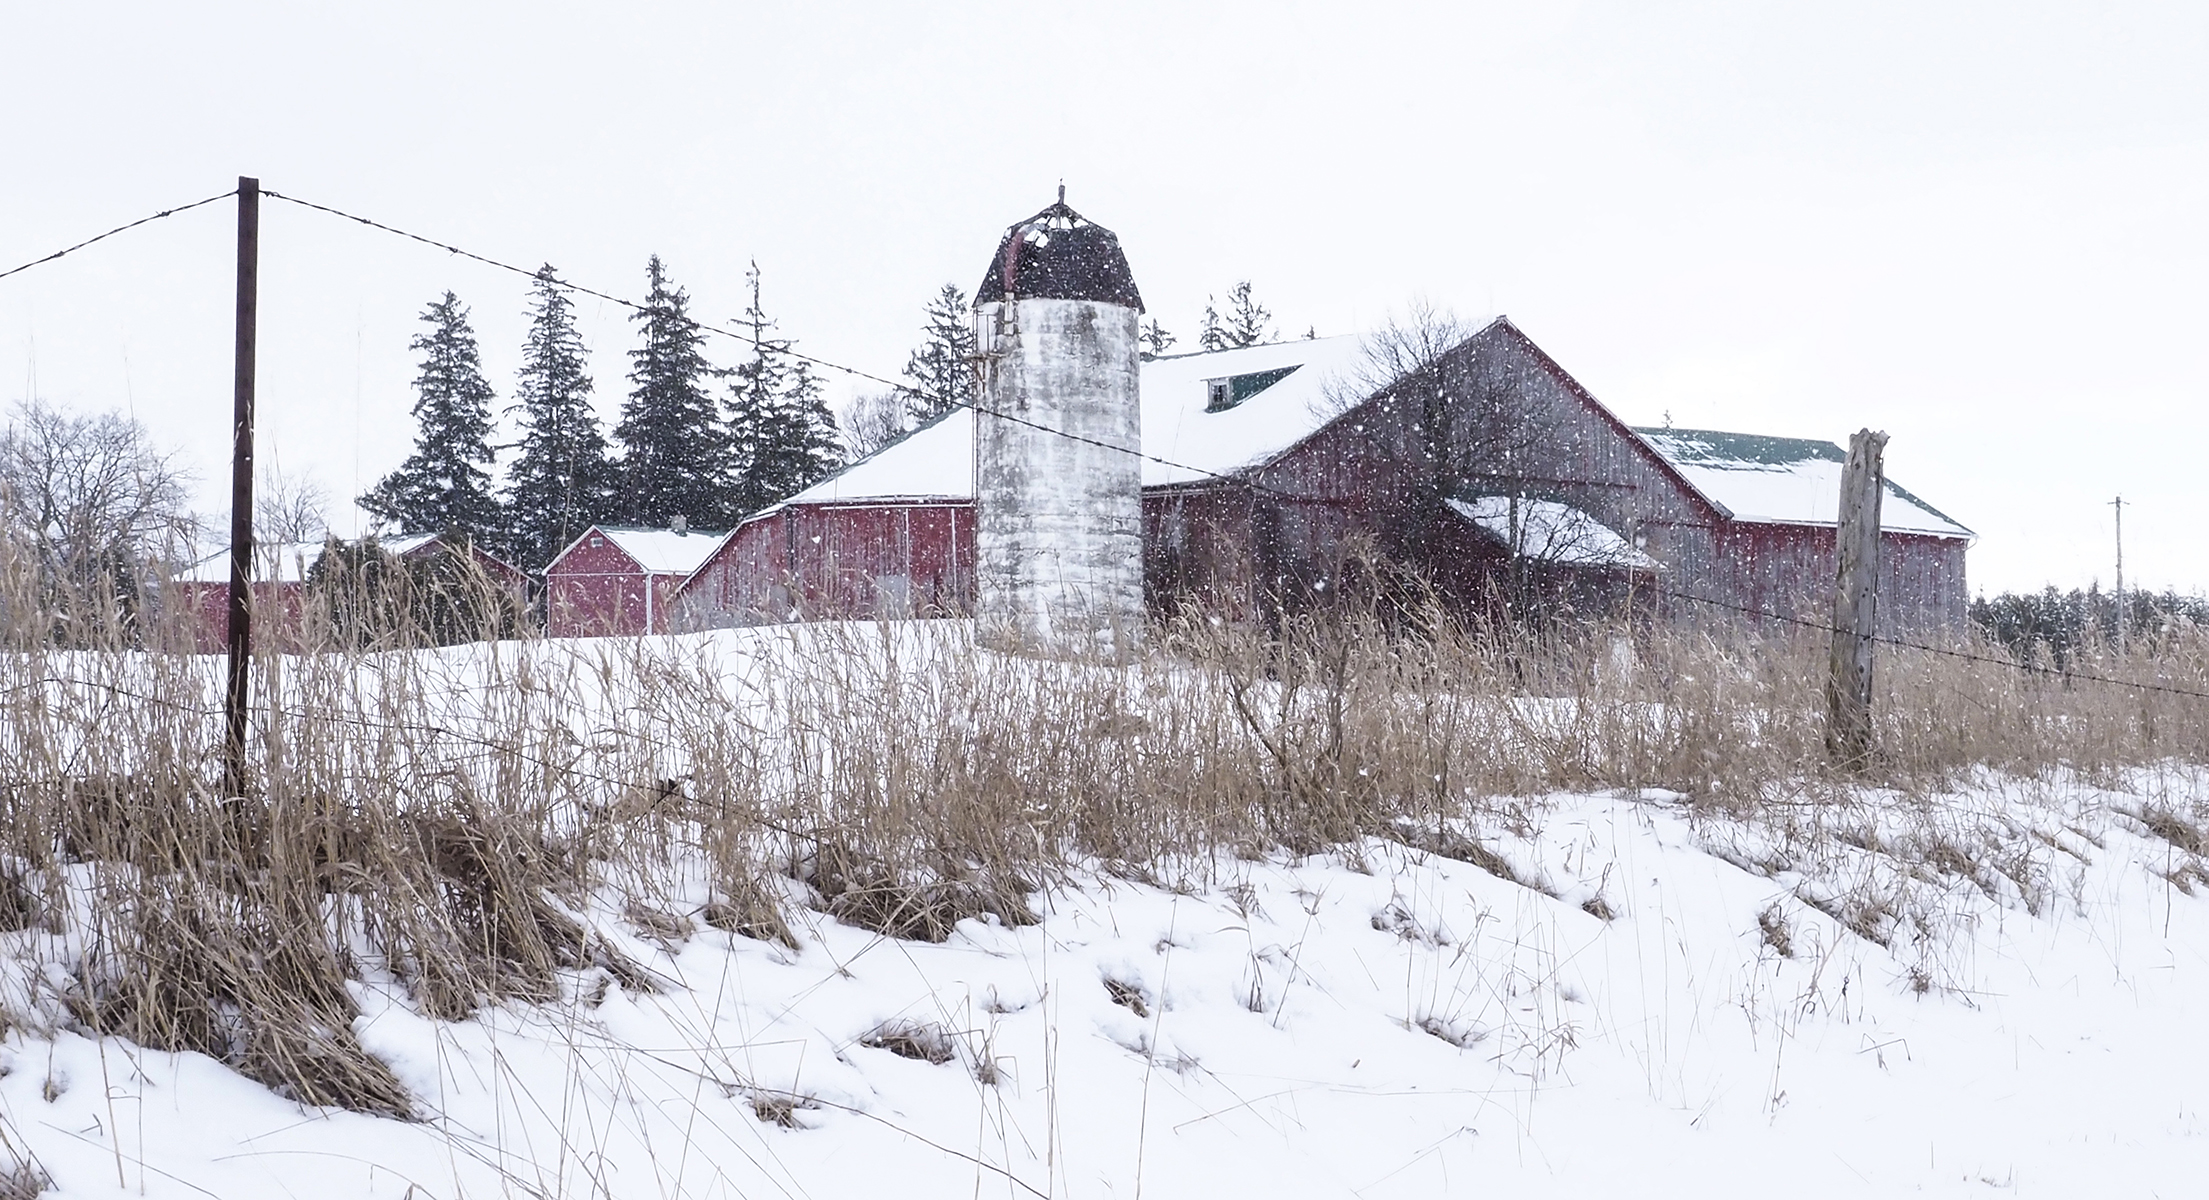 Winter photography scene south of Baden, Ontario by Susan Arness